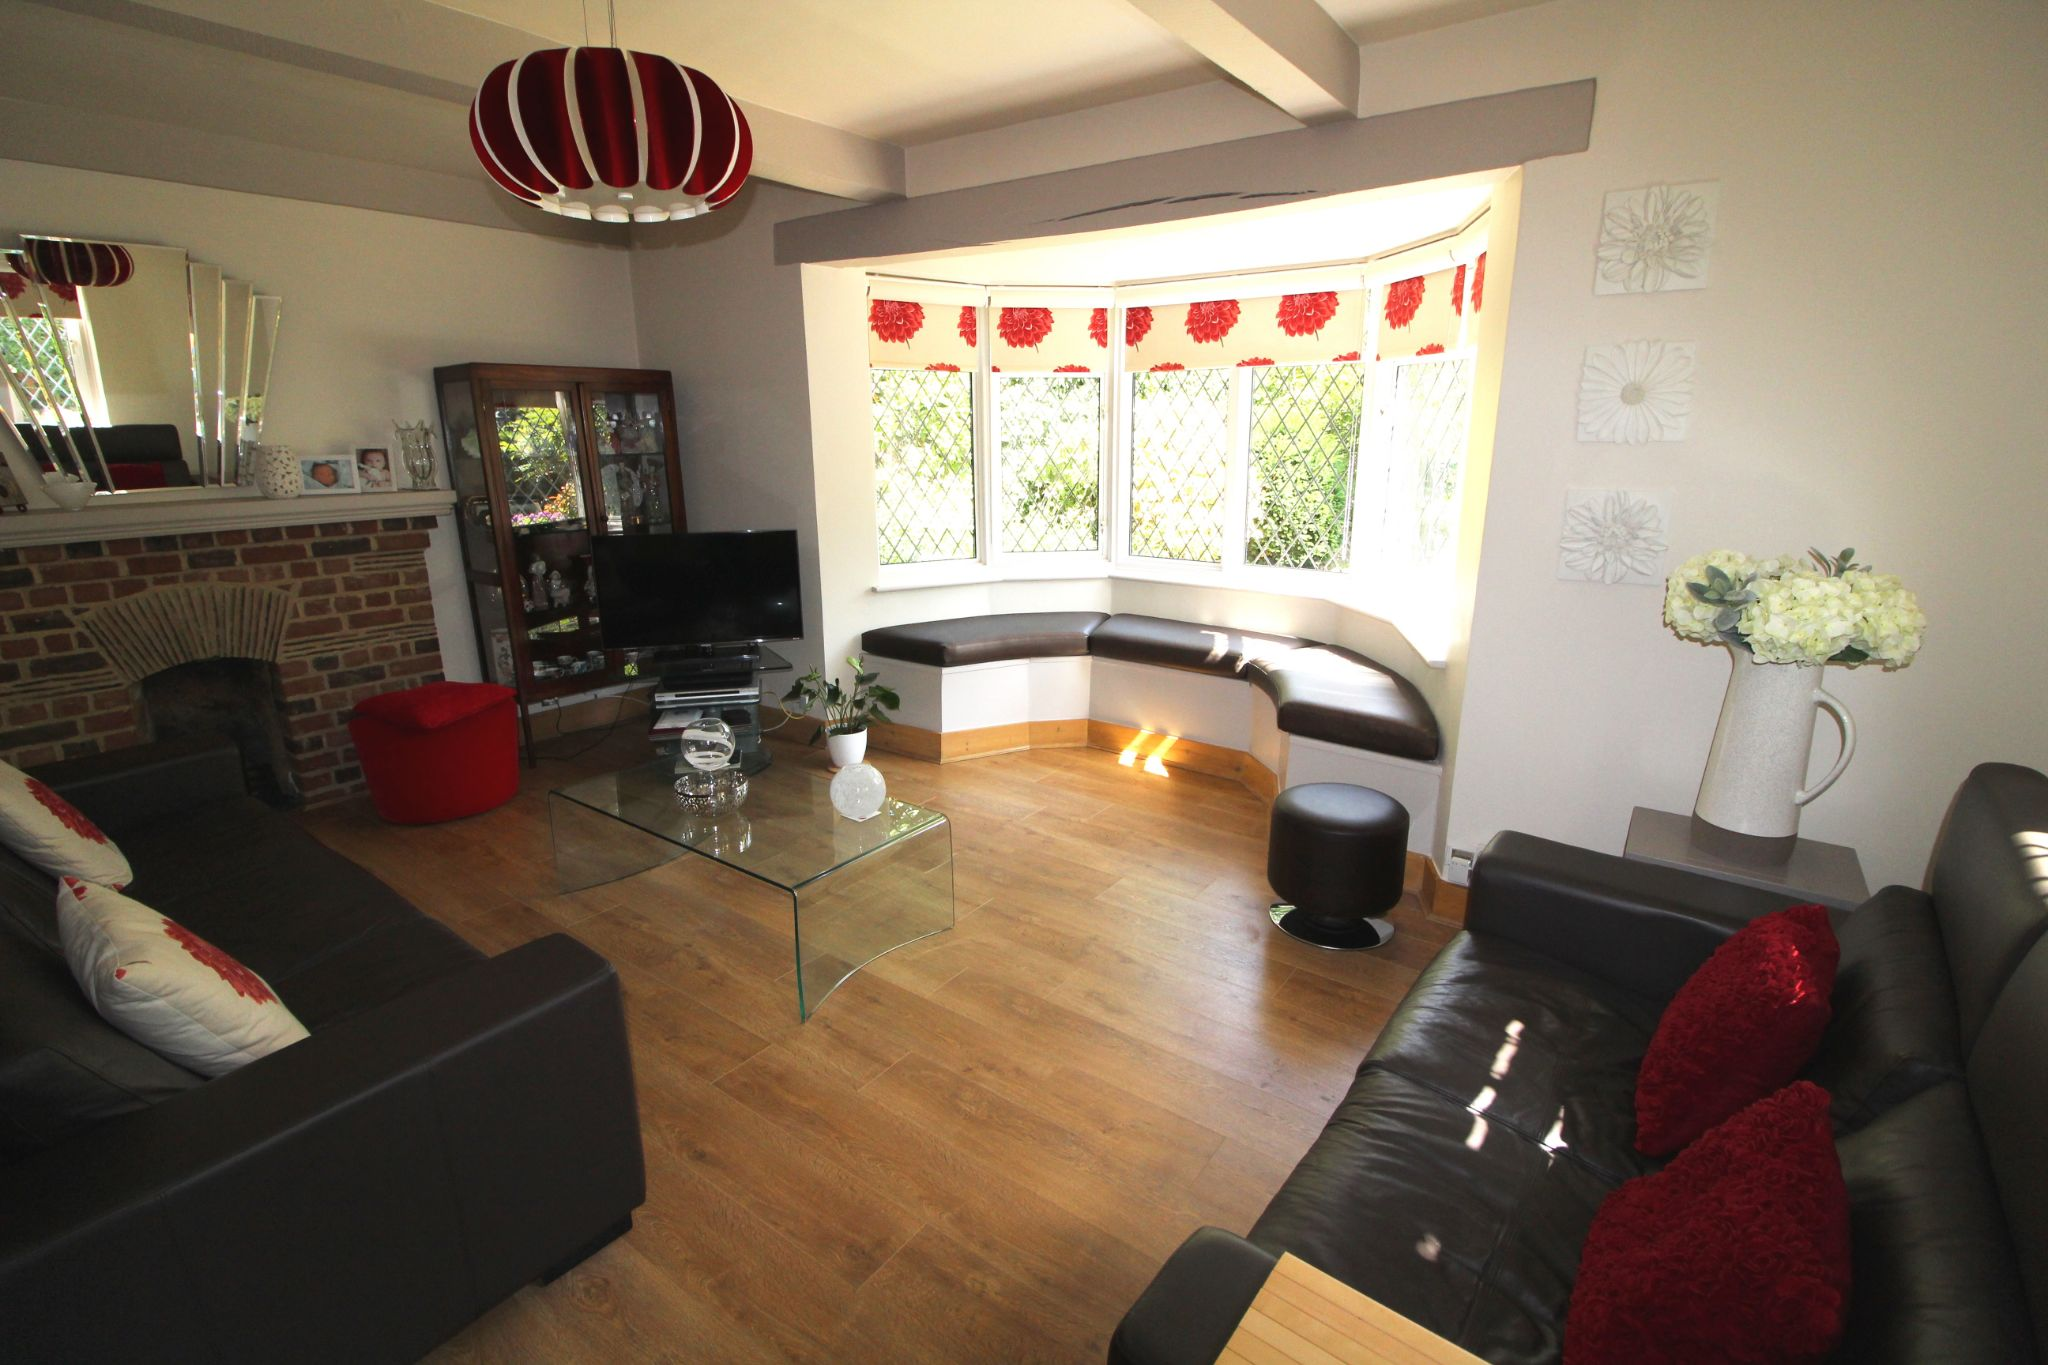 4 bedroom detached house For Sale in Potters Bar - Photograph 4